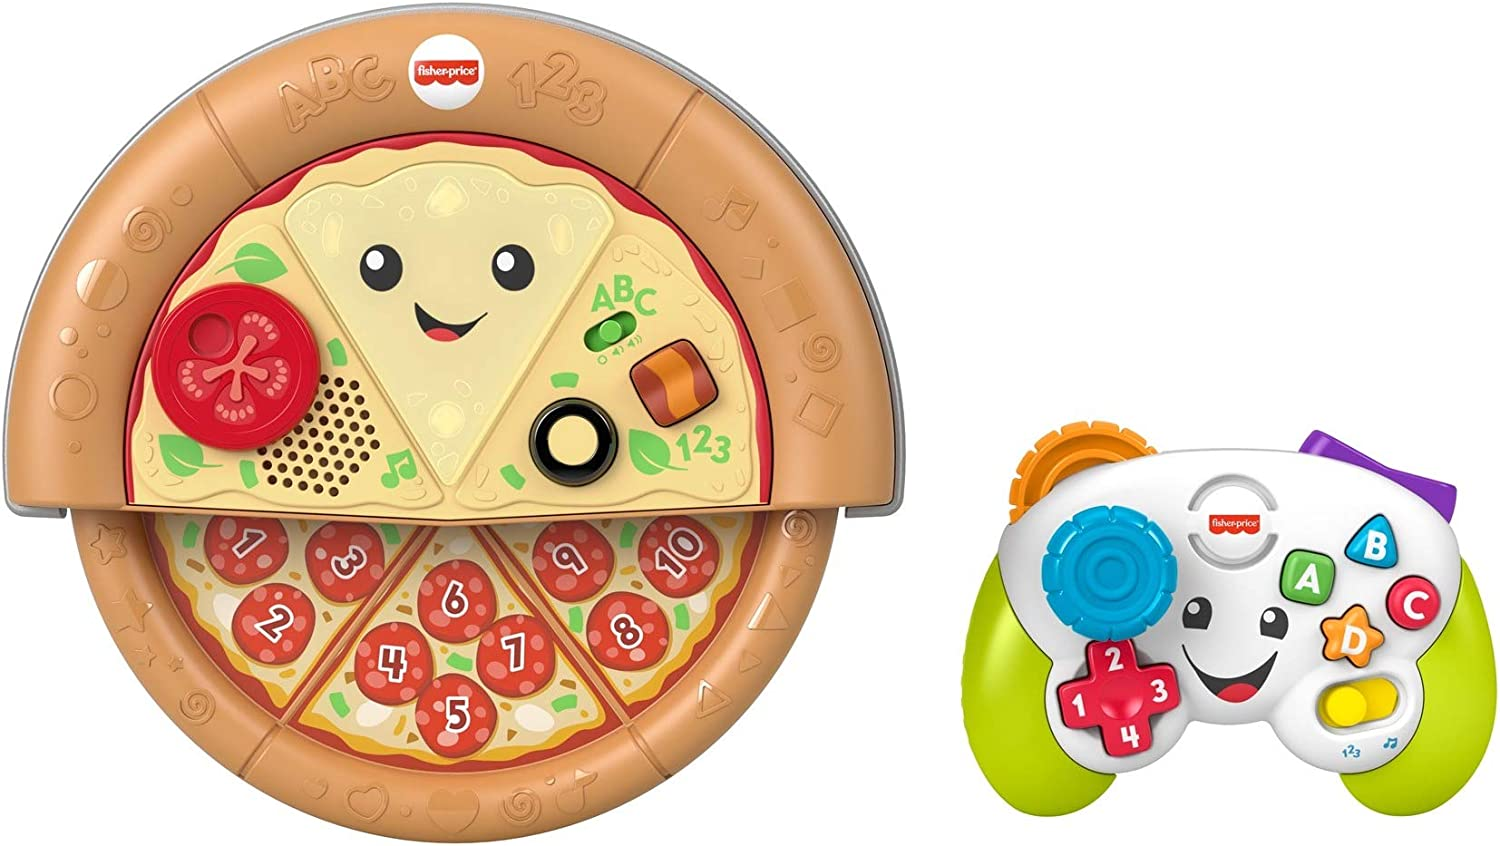 Fisher-Price Laugh & Learn Game and Pizza Party Gift Set of 2 toys with lights, music and learning content for baby and toddlers ages 6-36 months [Amazon Exclusive], GPN51